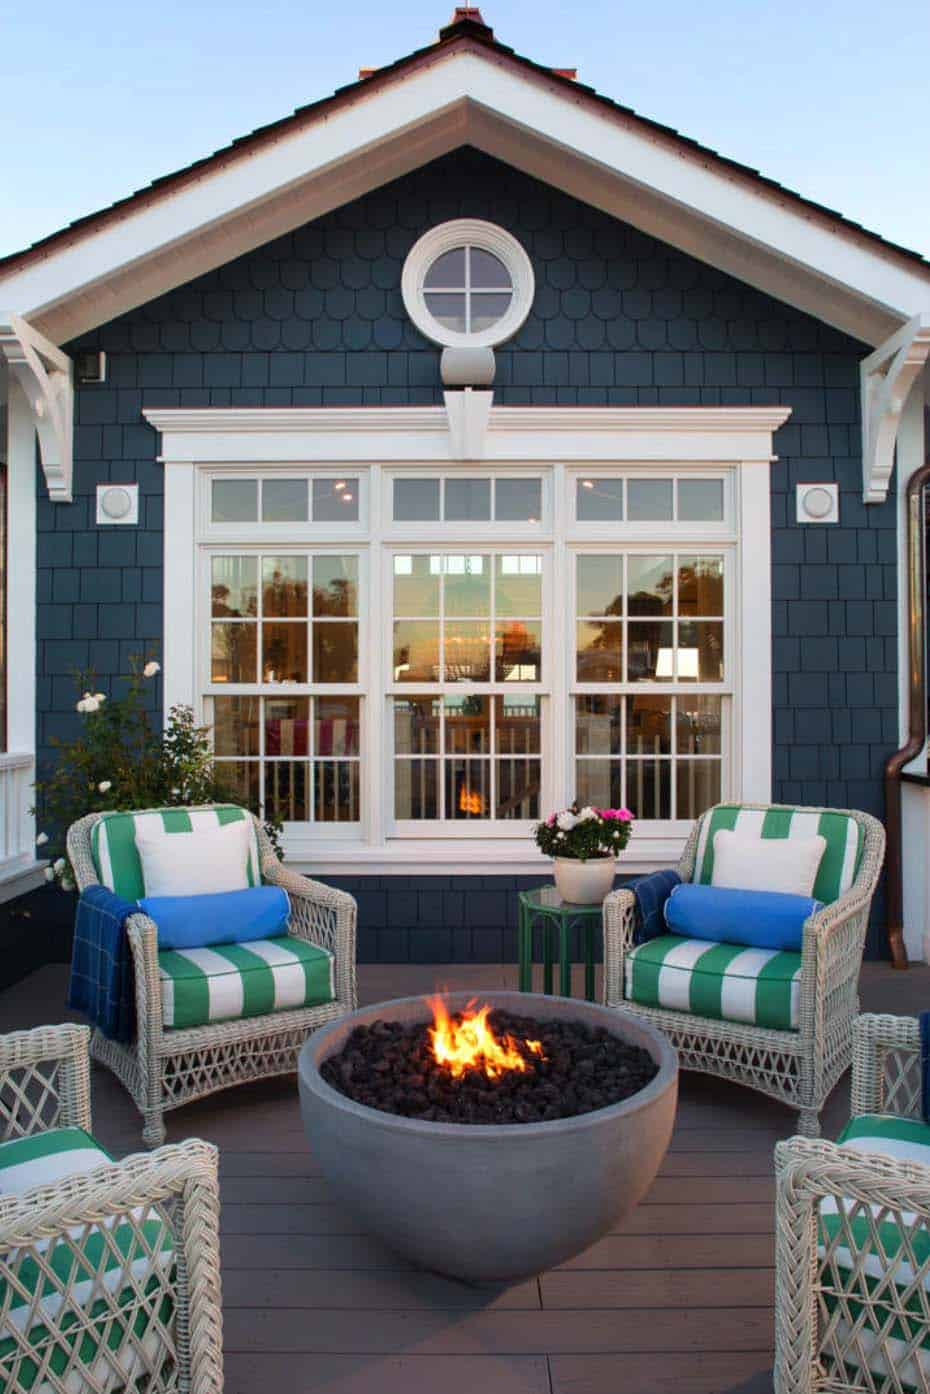 Contemporary Deck Ideas-Fire Features-26-1 Kindesign